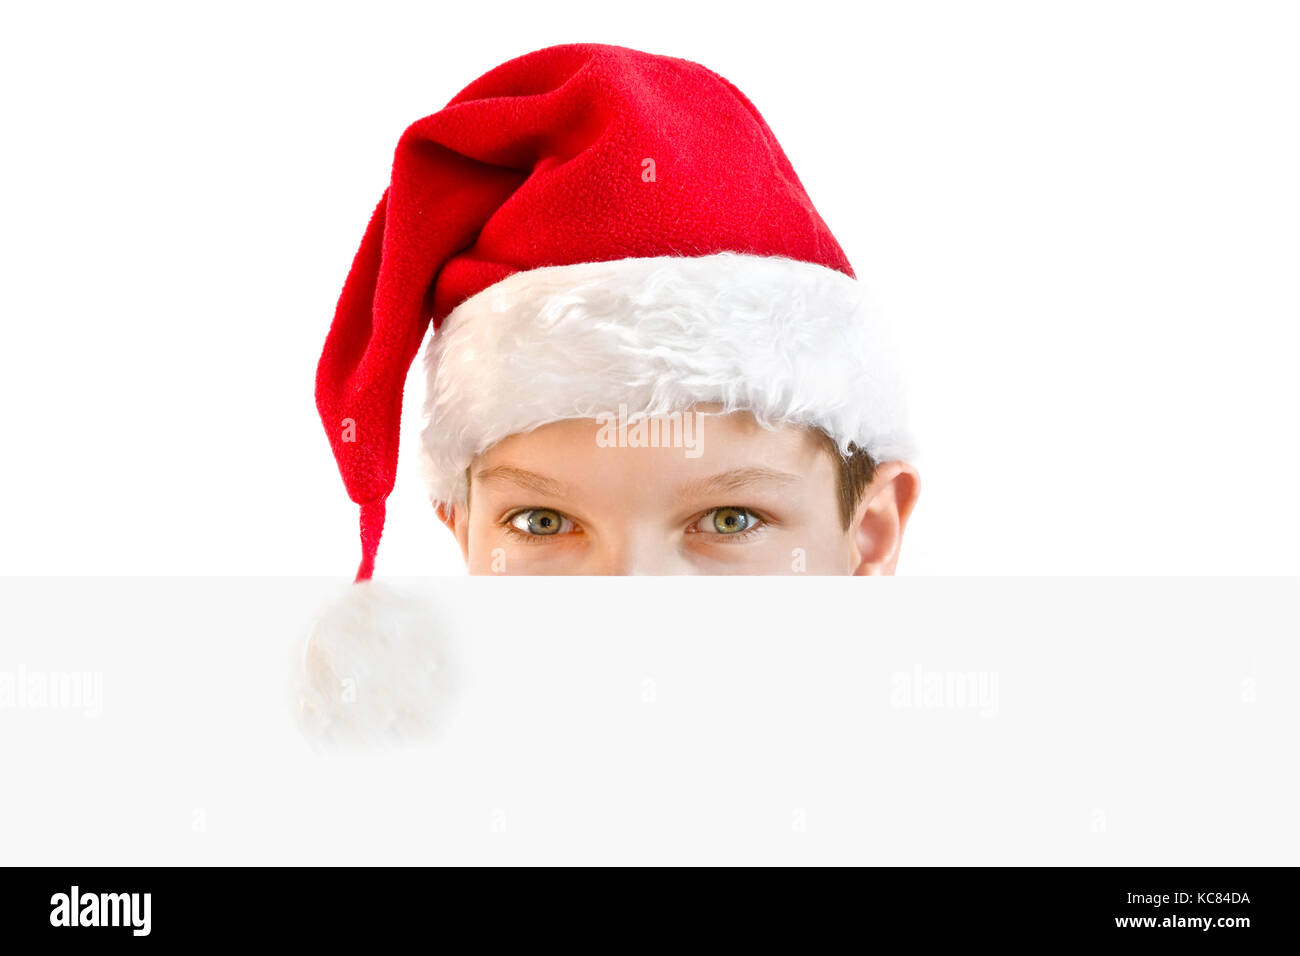 young boy in red santa hat hiding behind a blank paper stock photo